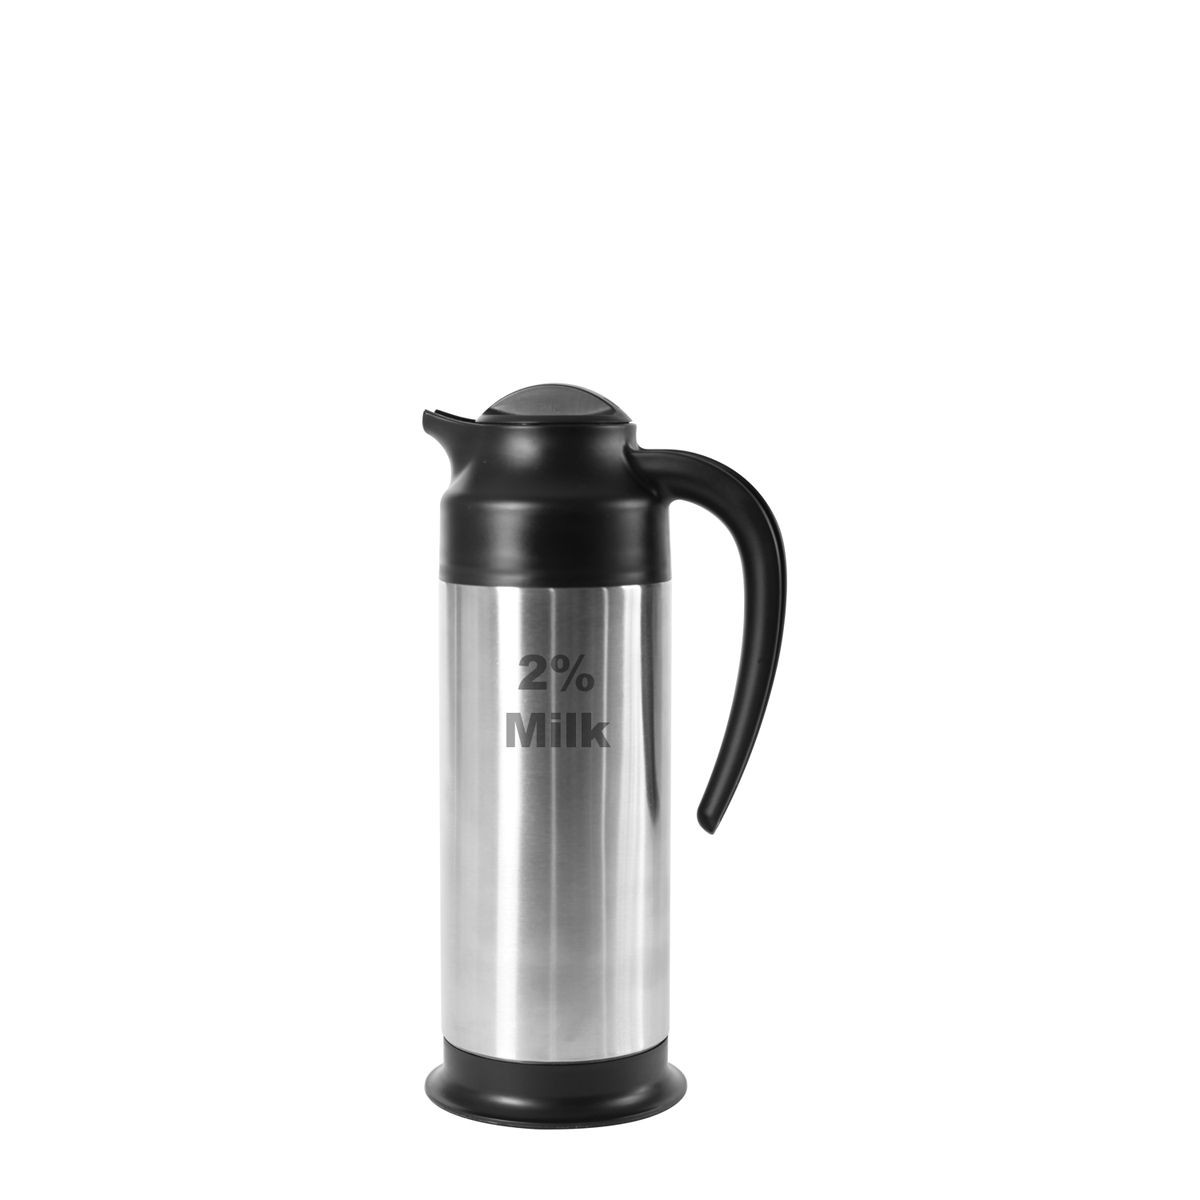 Service Ideas SSN1002PCTET Stainless Vacuum Carafe for 2% with Screw-on Lid, 1 Liter